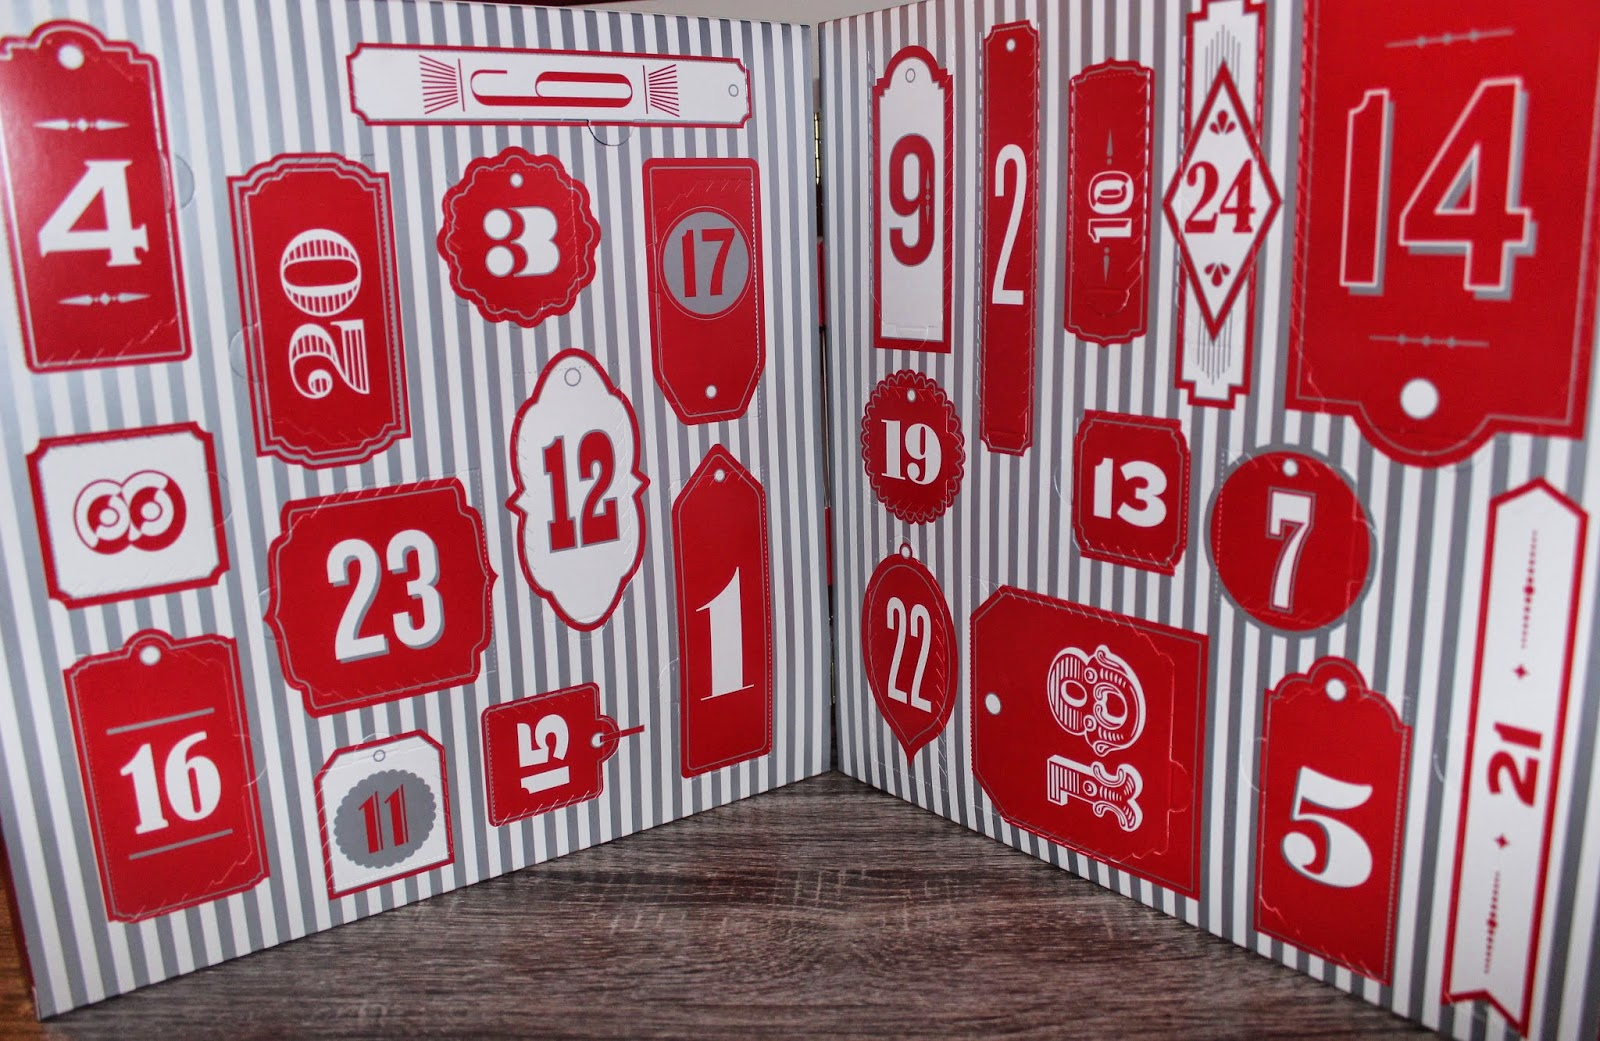 The Best of The Body Shop Advent Calendar